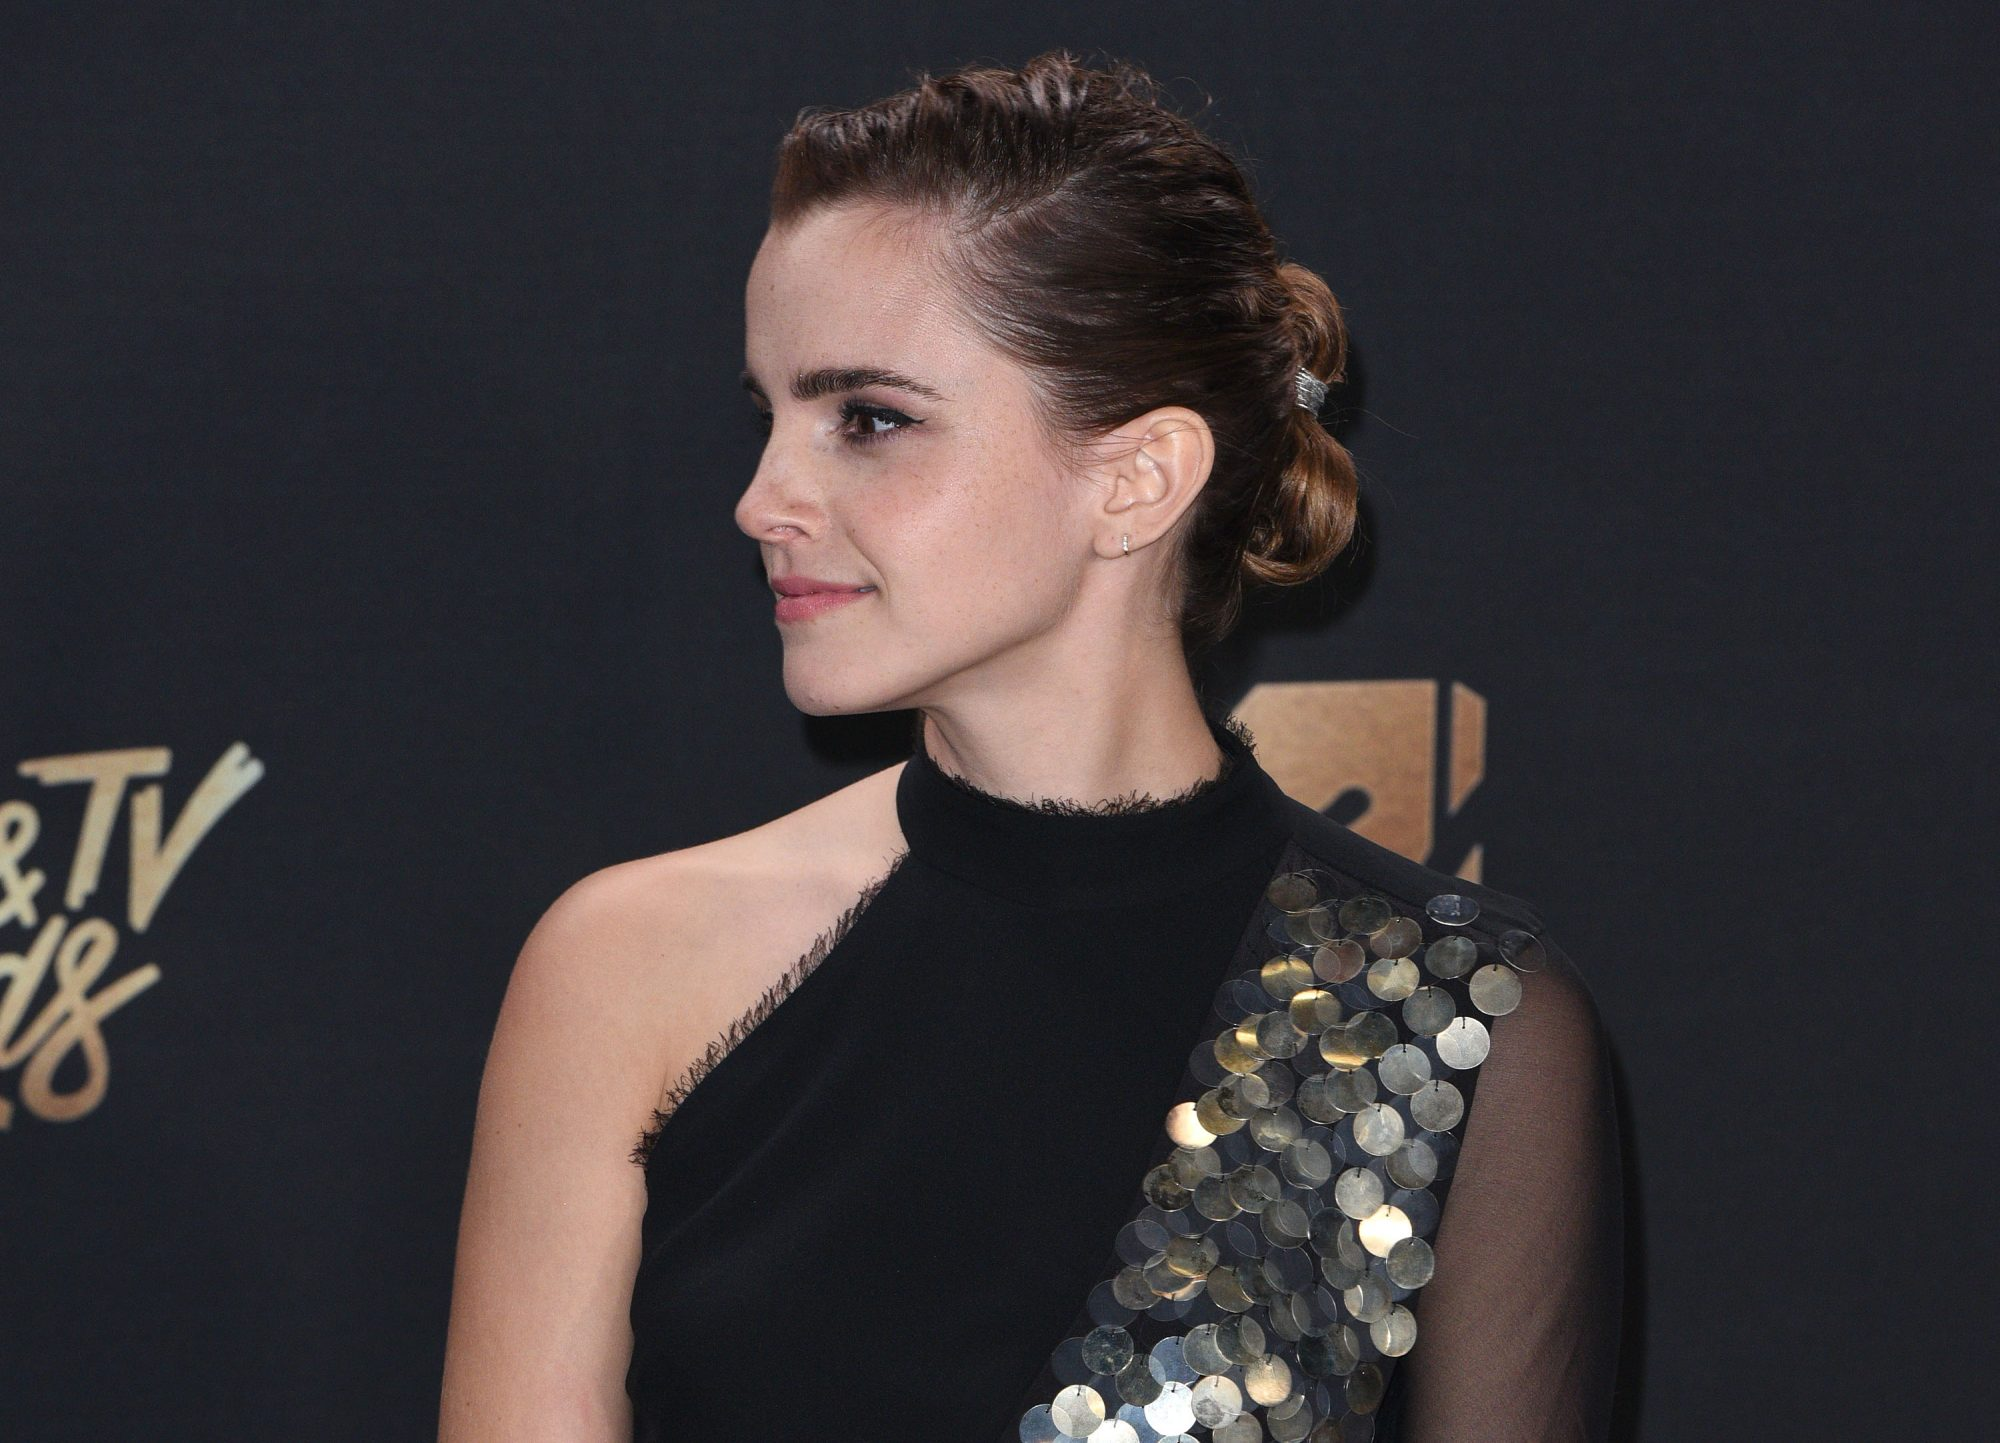 The Cool Girl Up-Do